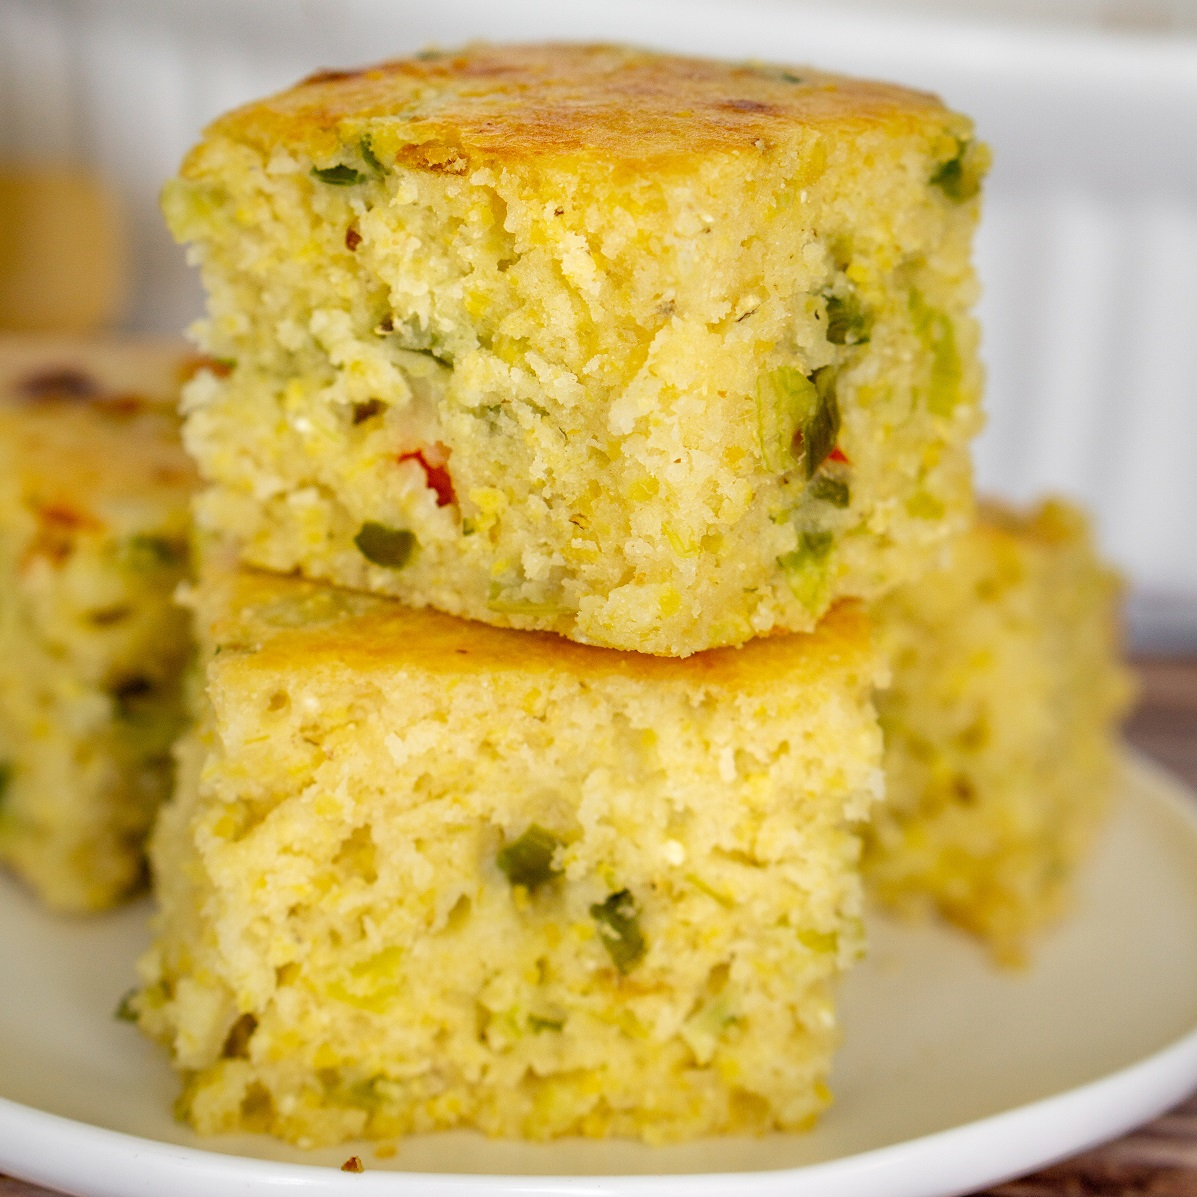 stack of savory cornbread pieces on a plate